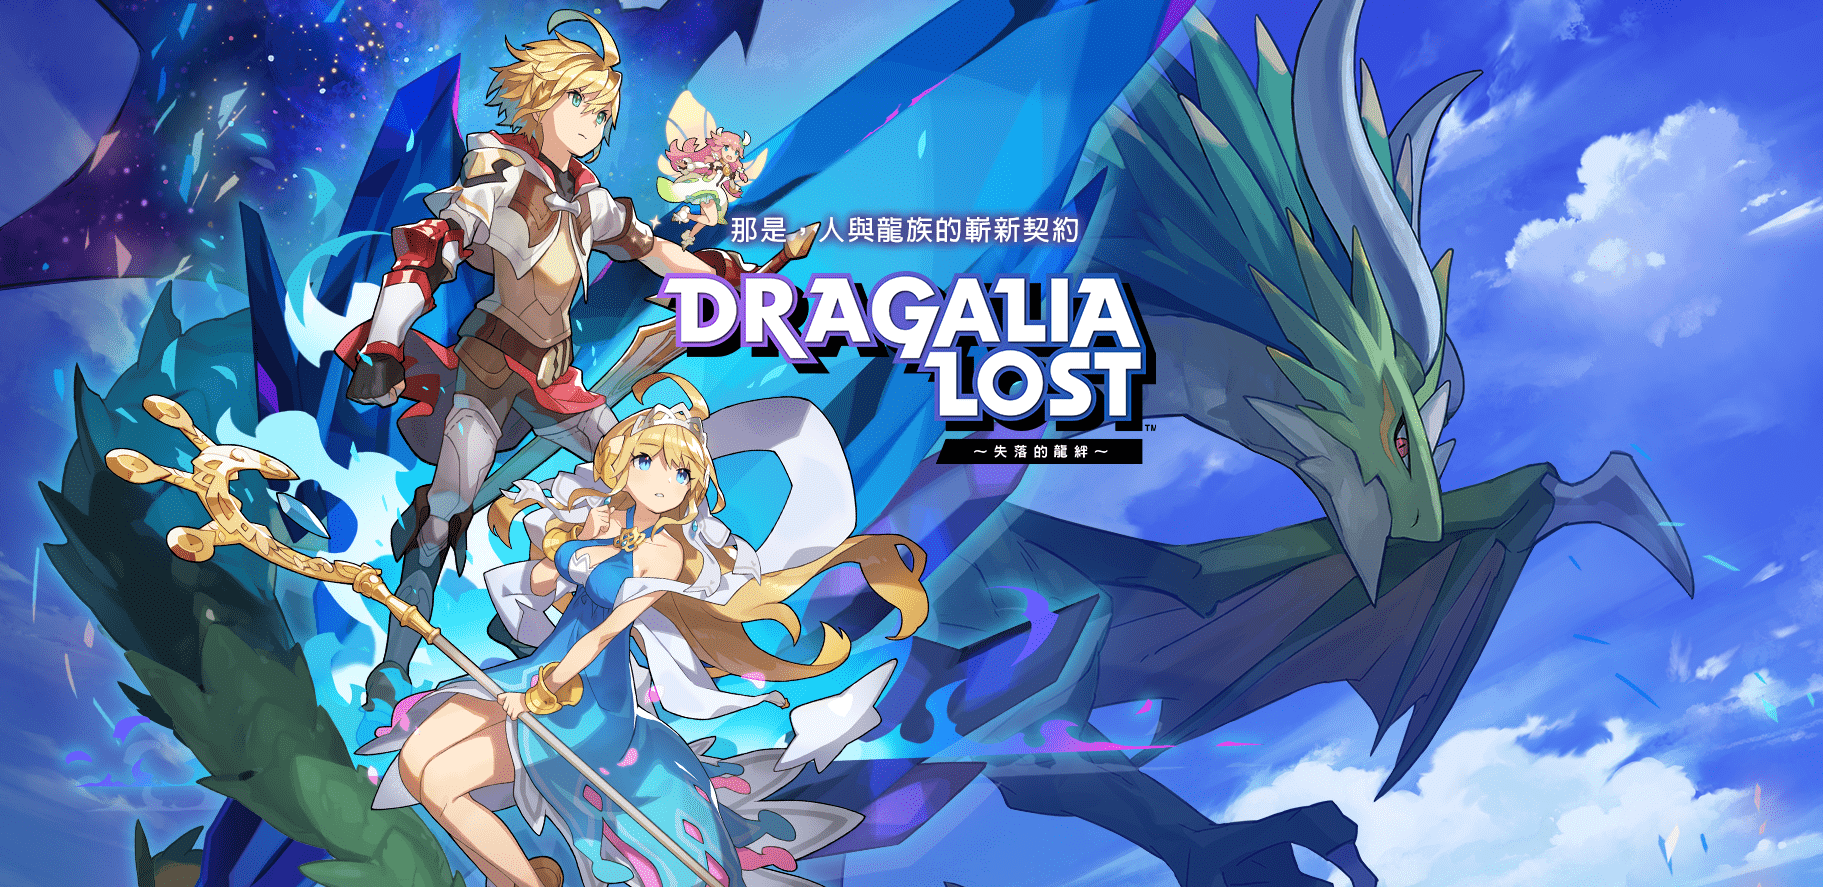 Update: Now available in more regions] Dragalia Lost by